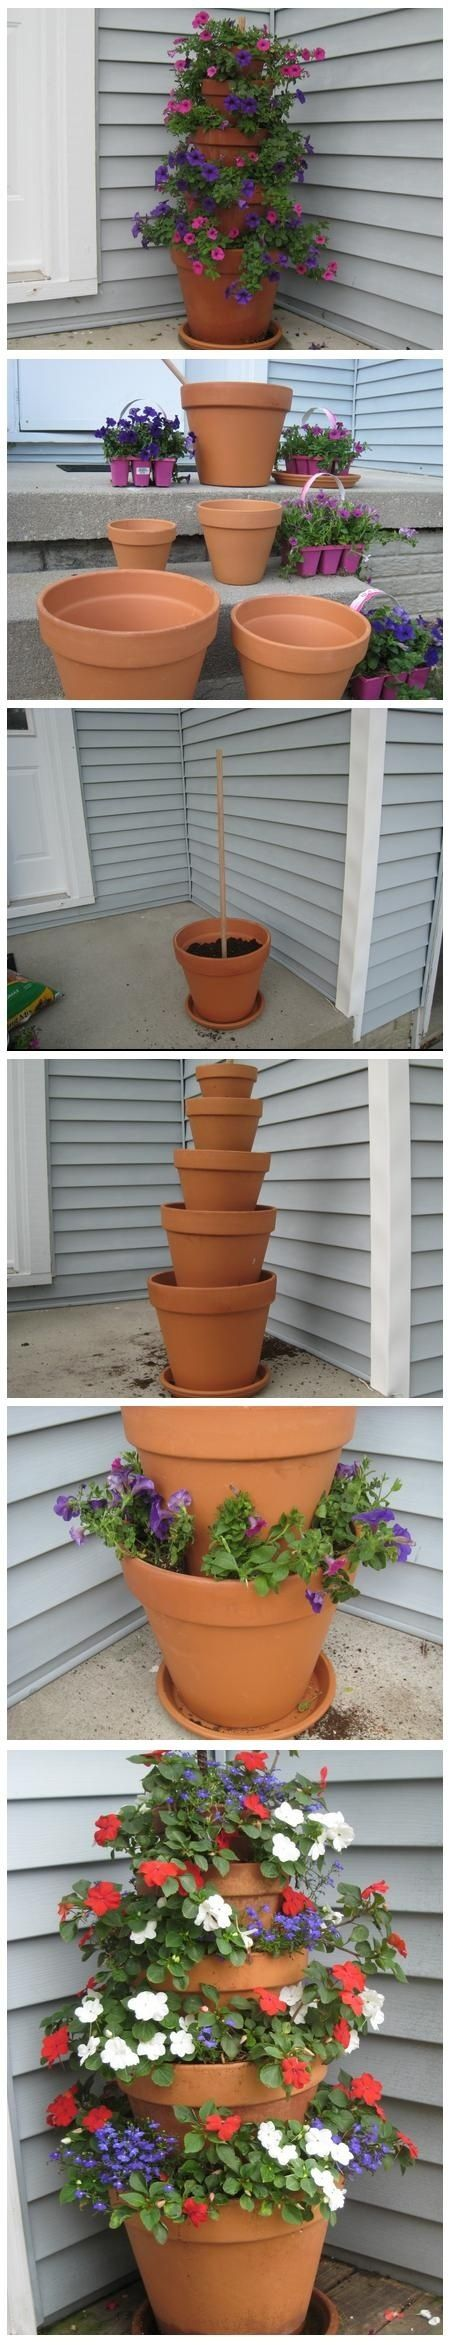 Terra Cotta Pot Flower Tower with Annuals Really want to do this